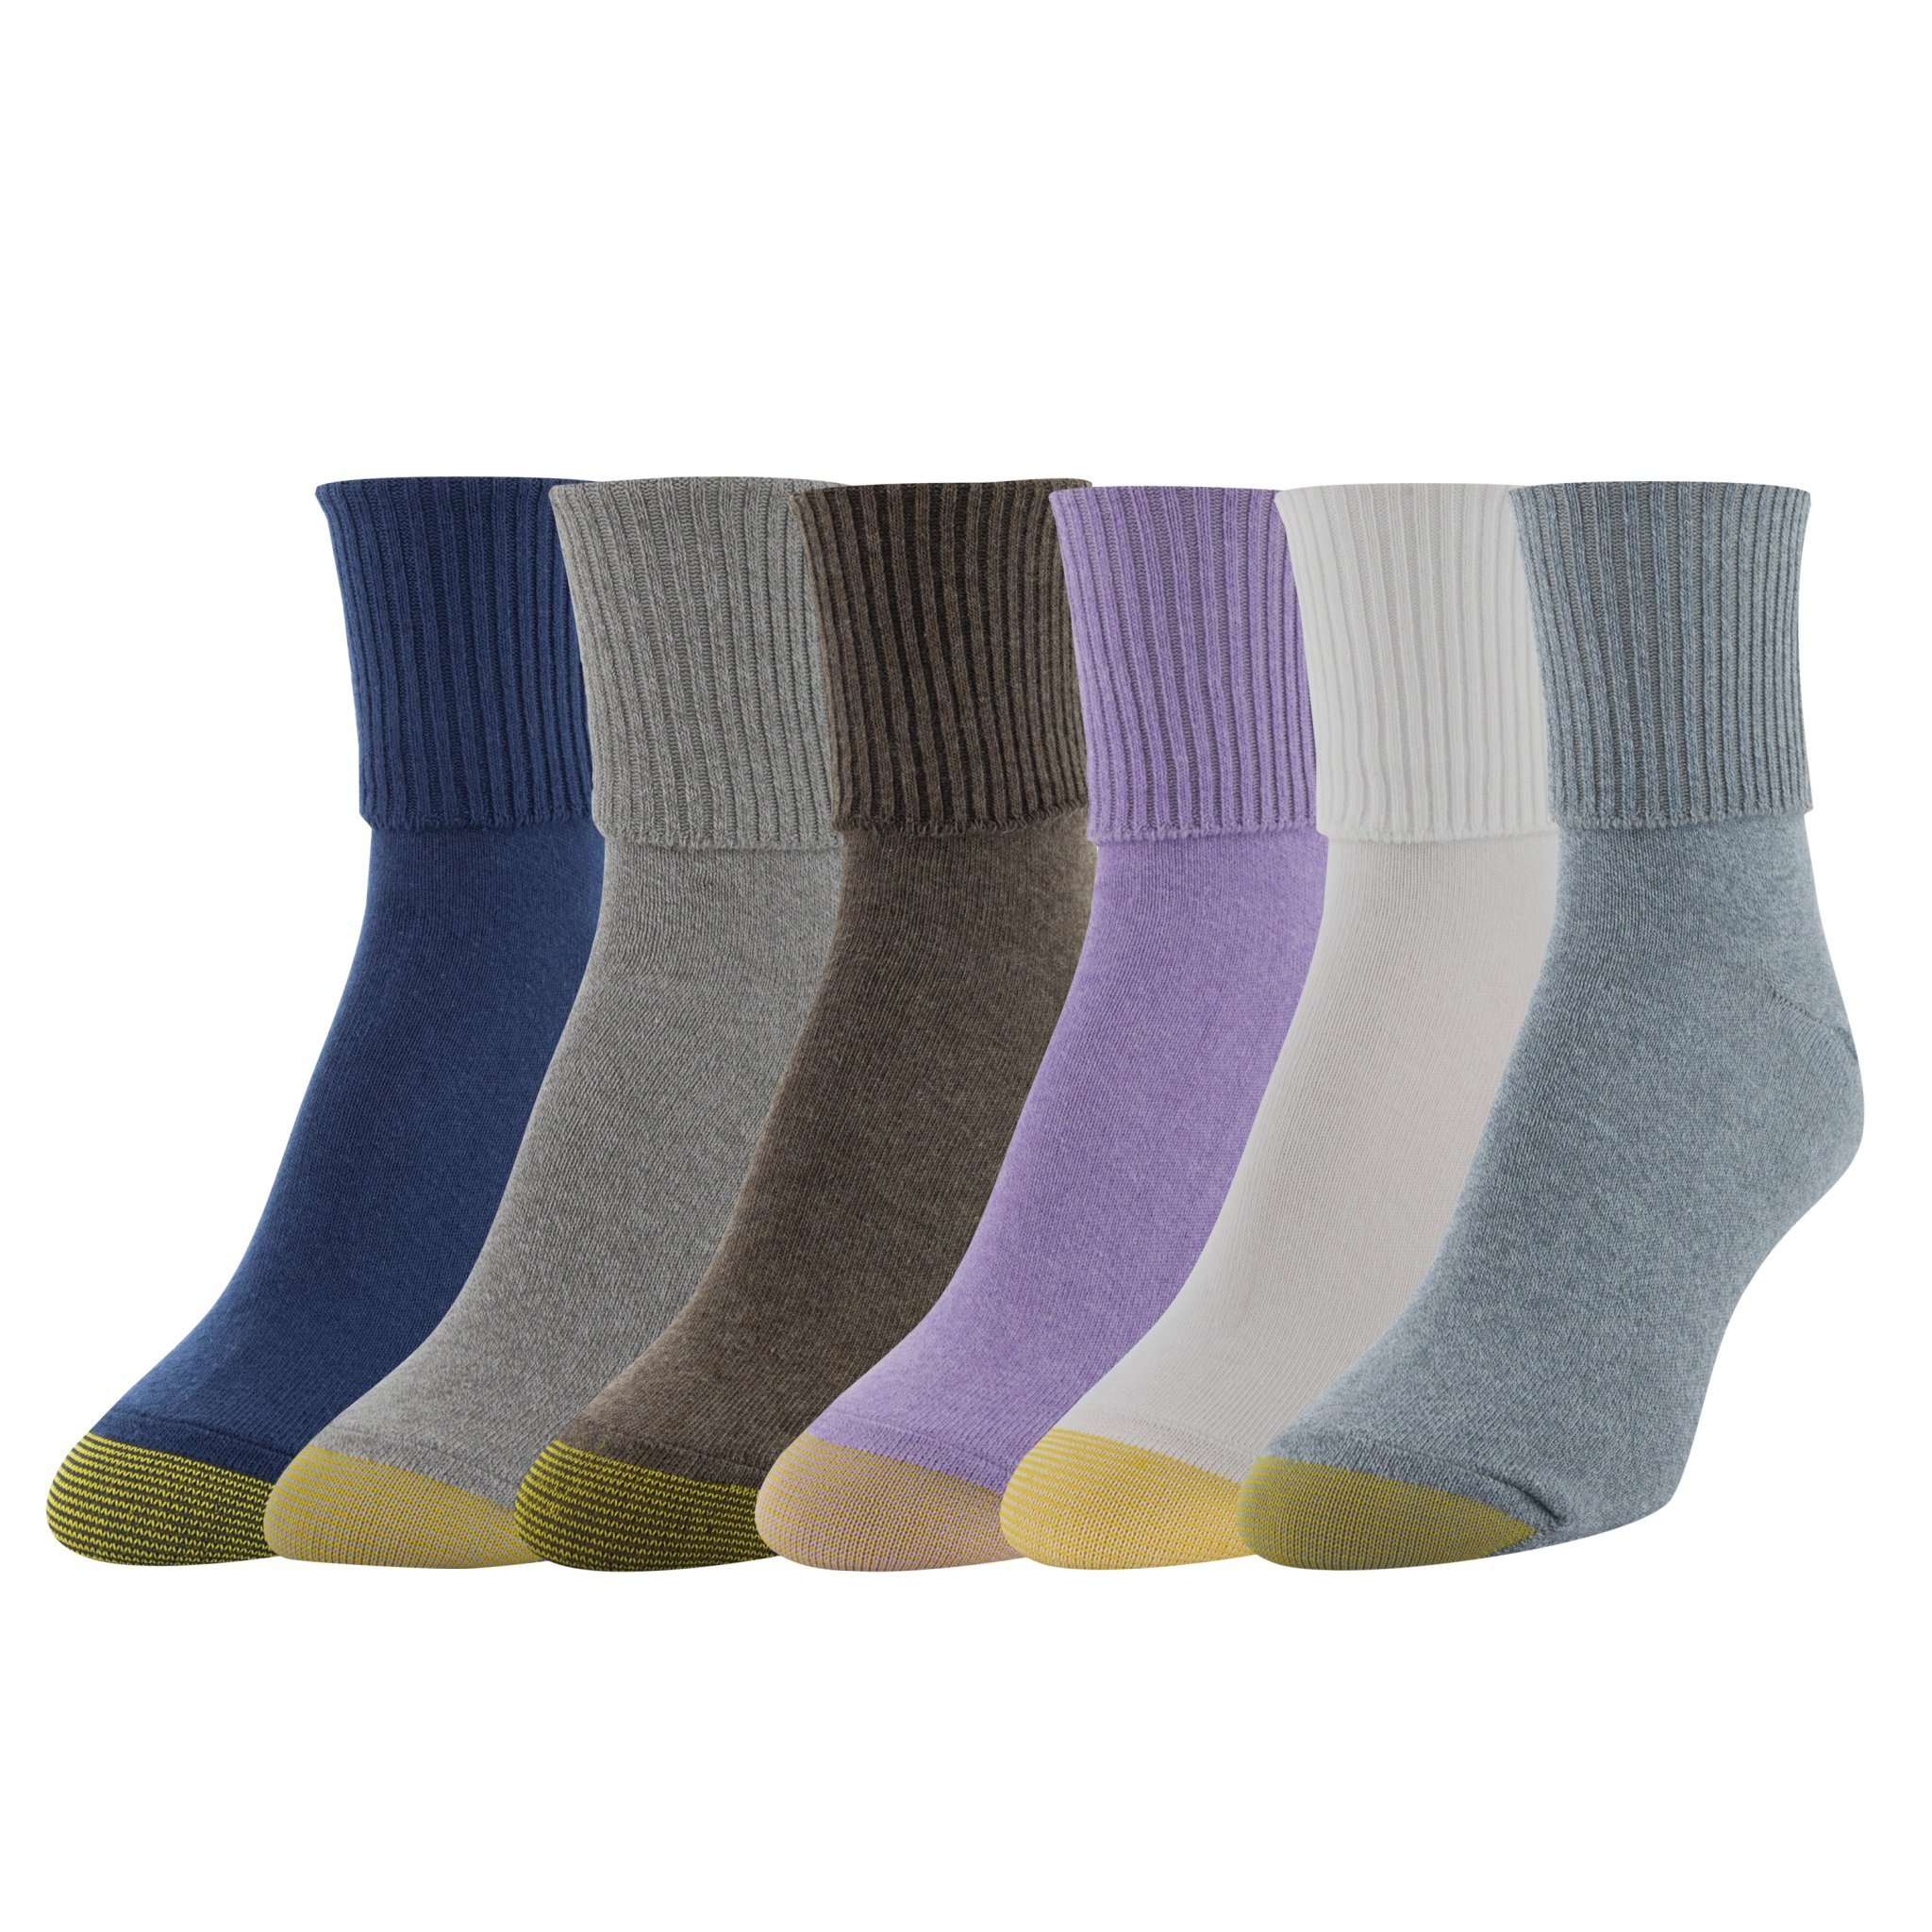 Gold Toe Women's 6-Pack Turn Cuff Sock Grey Brown Mix Shoe Size 6-9/Sock Size 9-11